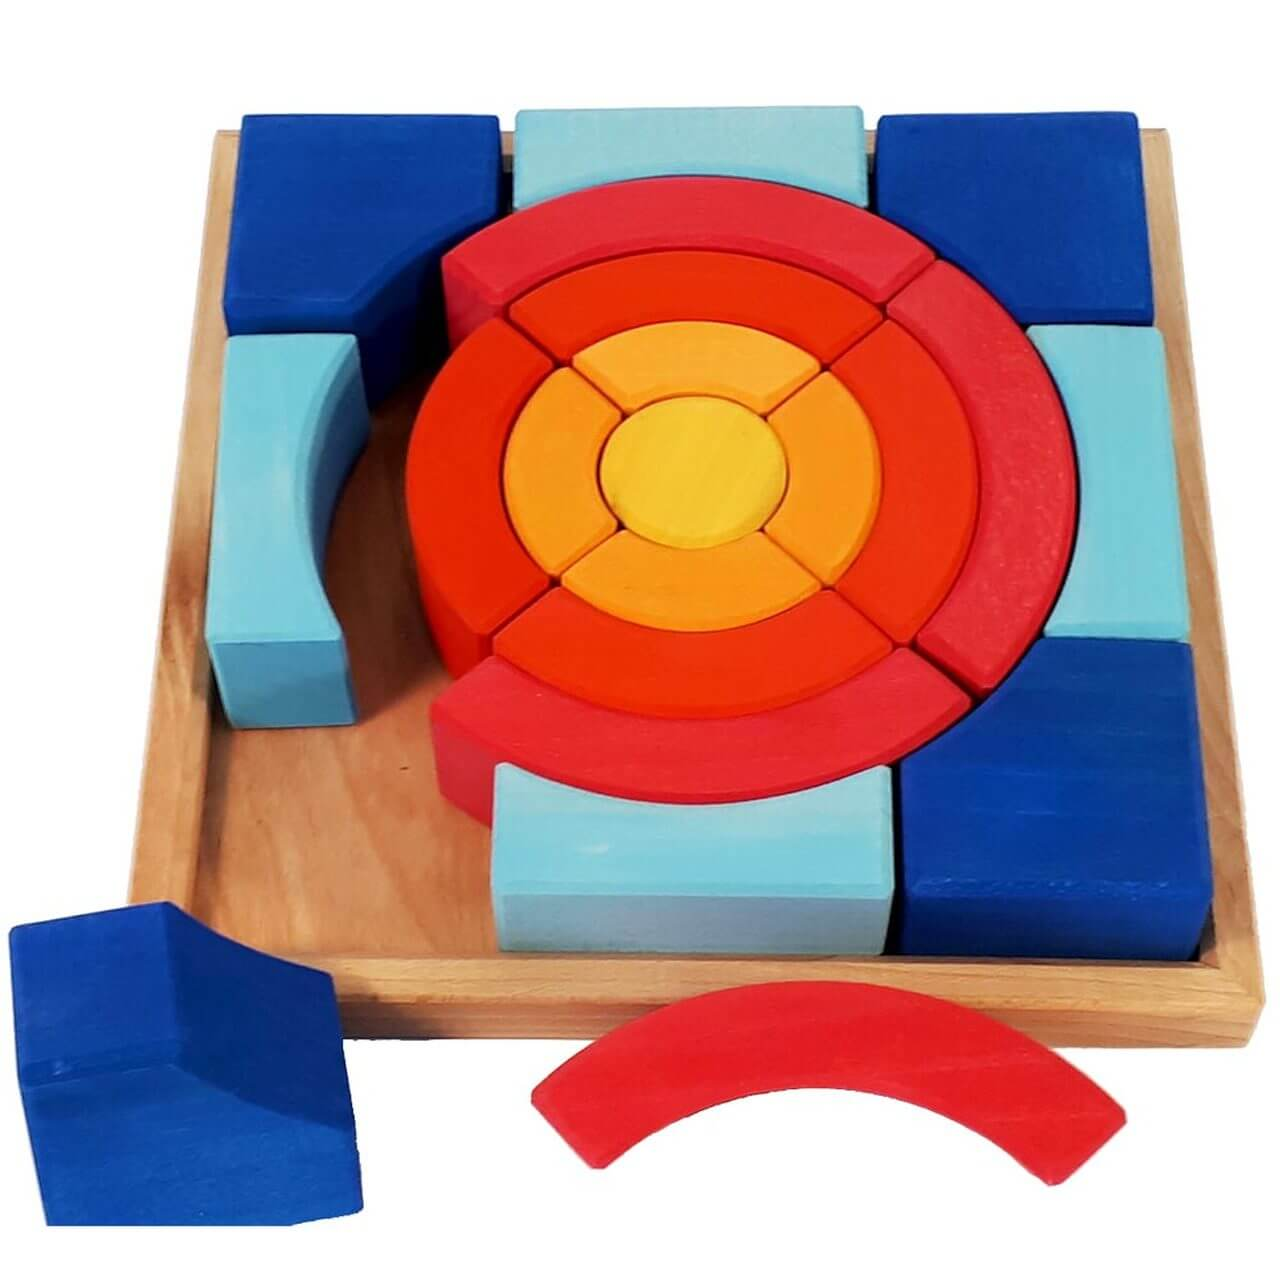 bauspiel-circle-puzzle-wooden block set